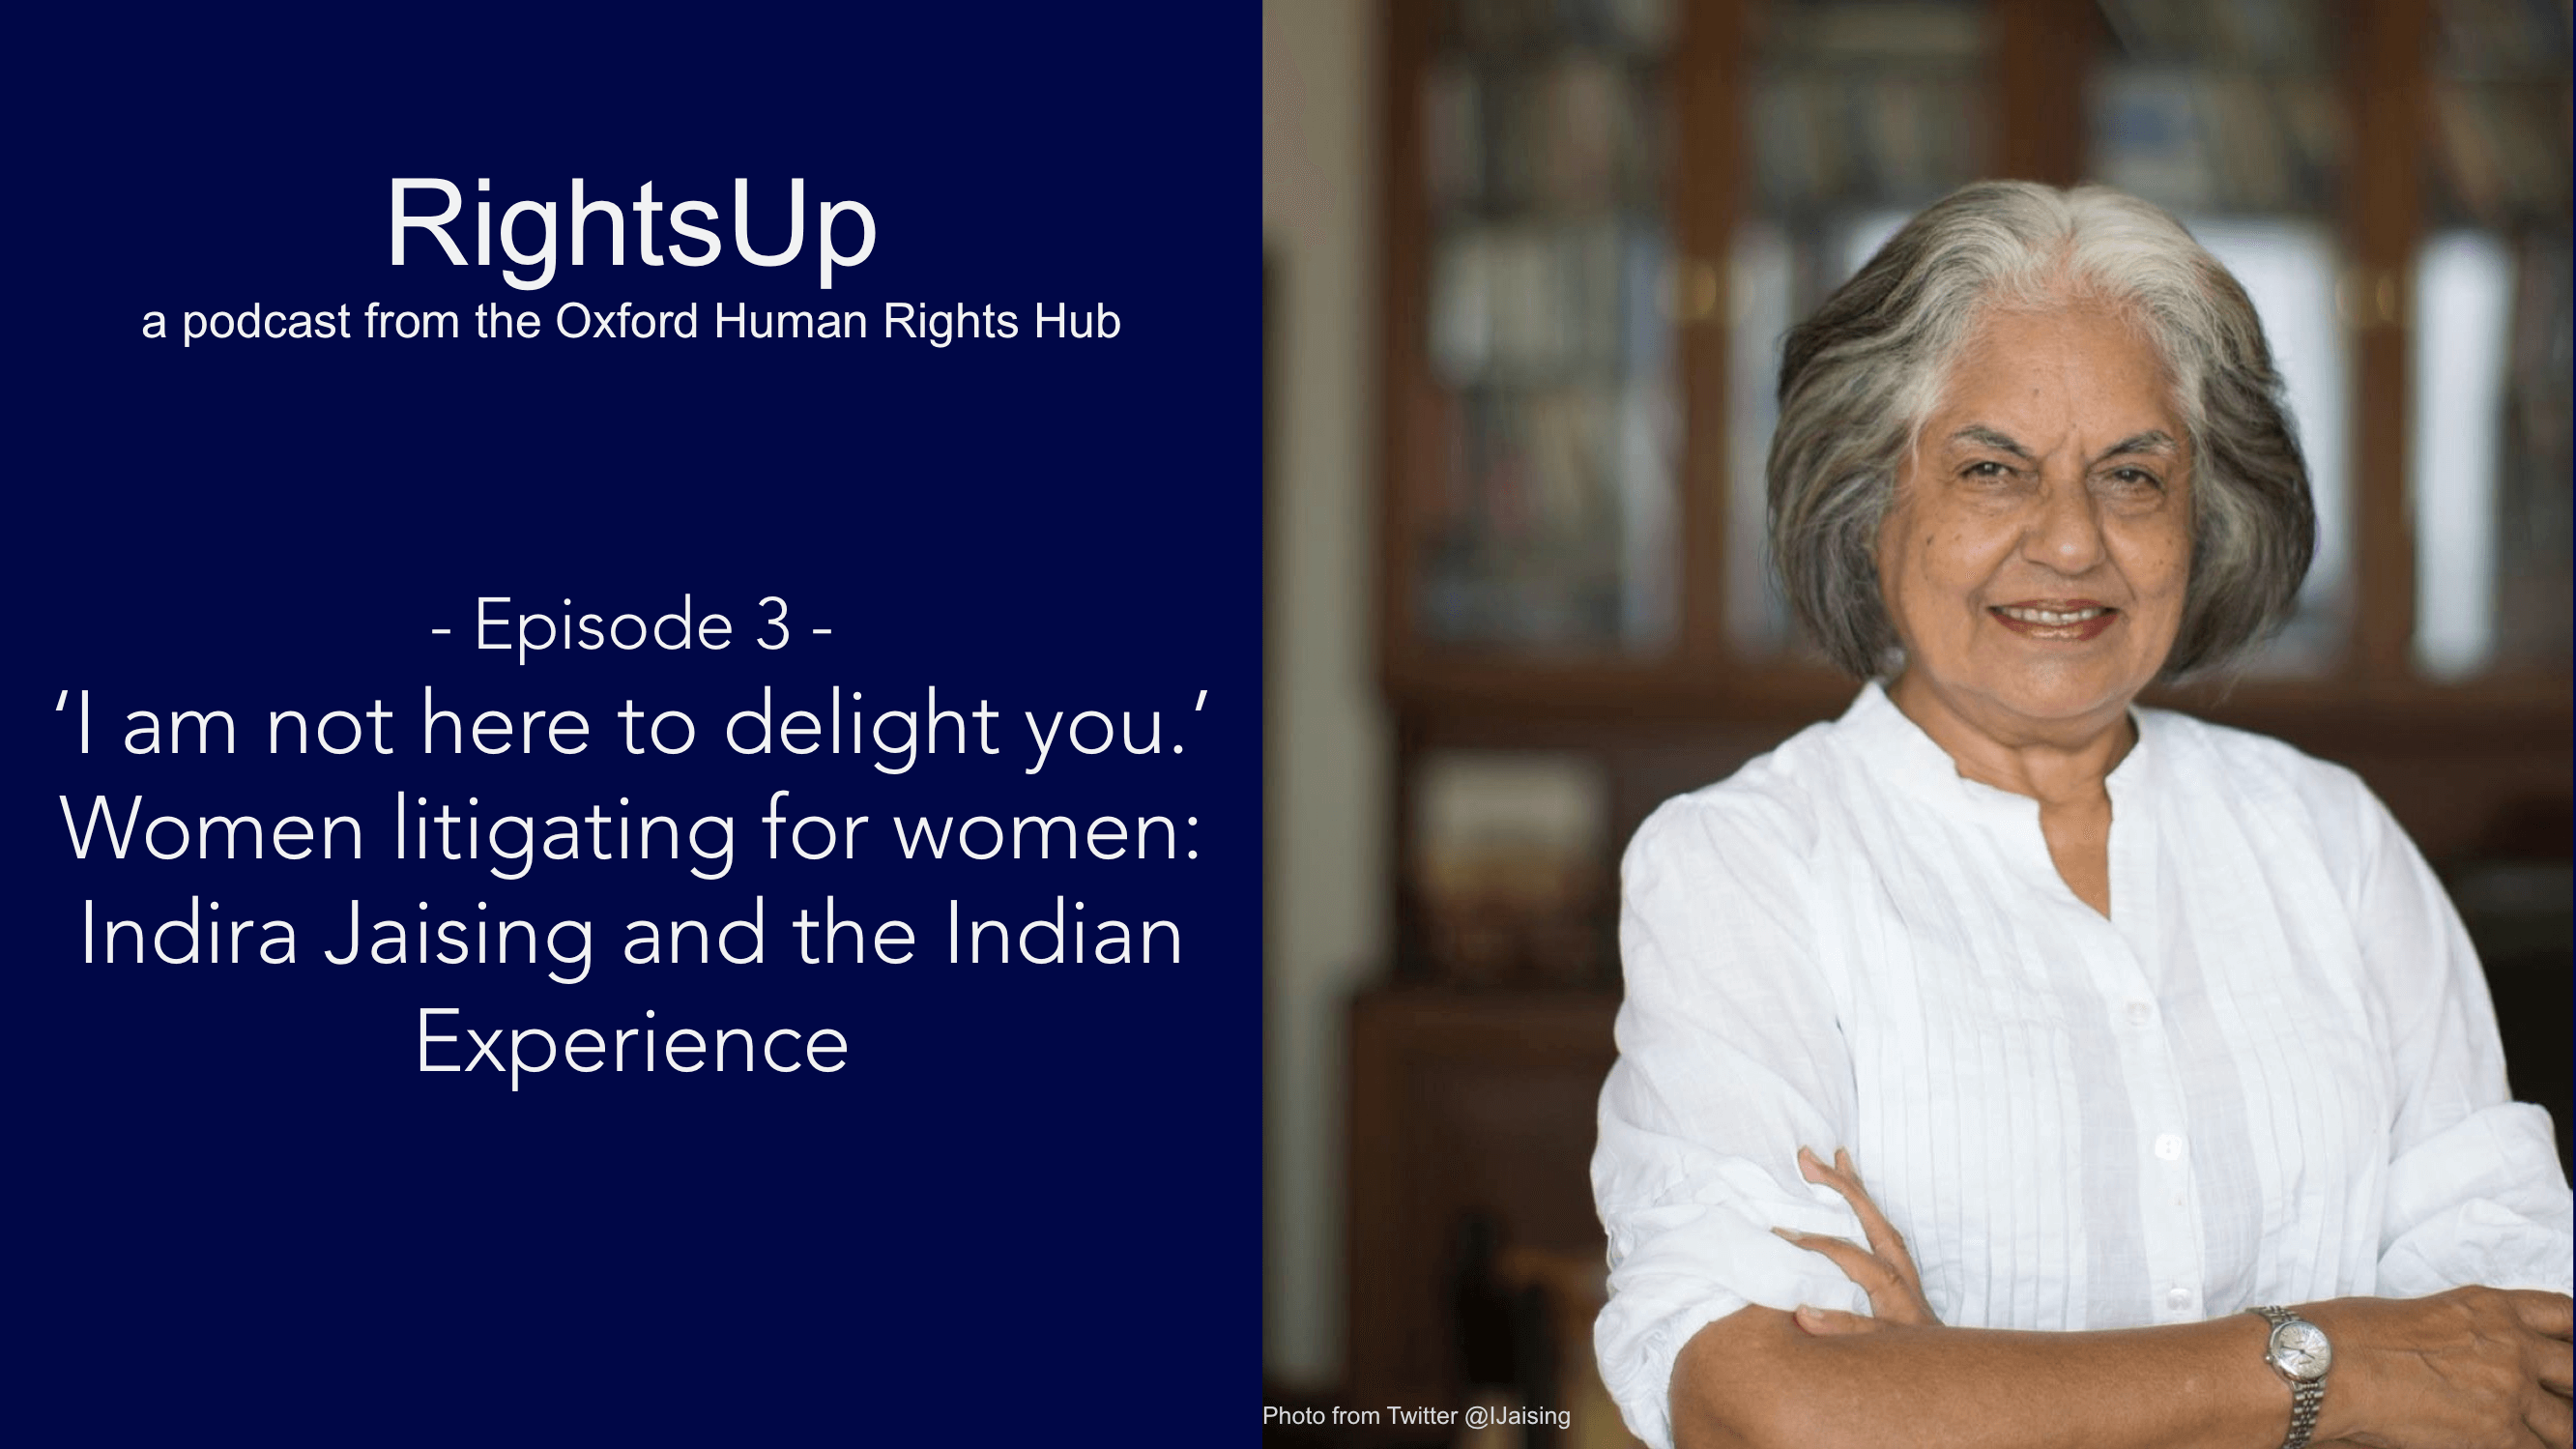 """RightsUp Episode 3: """"I am not here to delight you"""": Women Litigating for Women – Indira Jaising and the Indian Experience"""